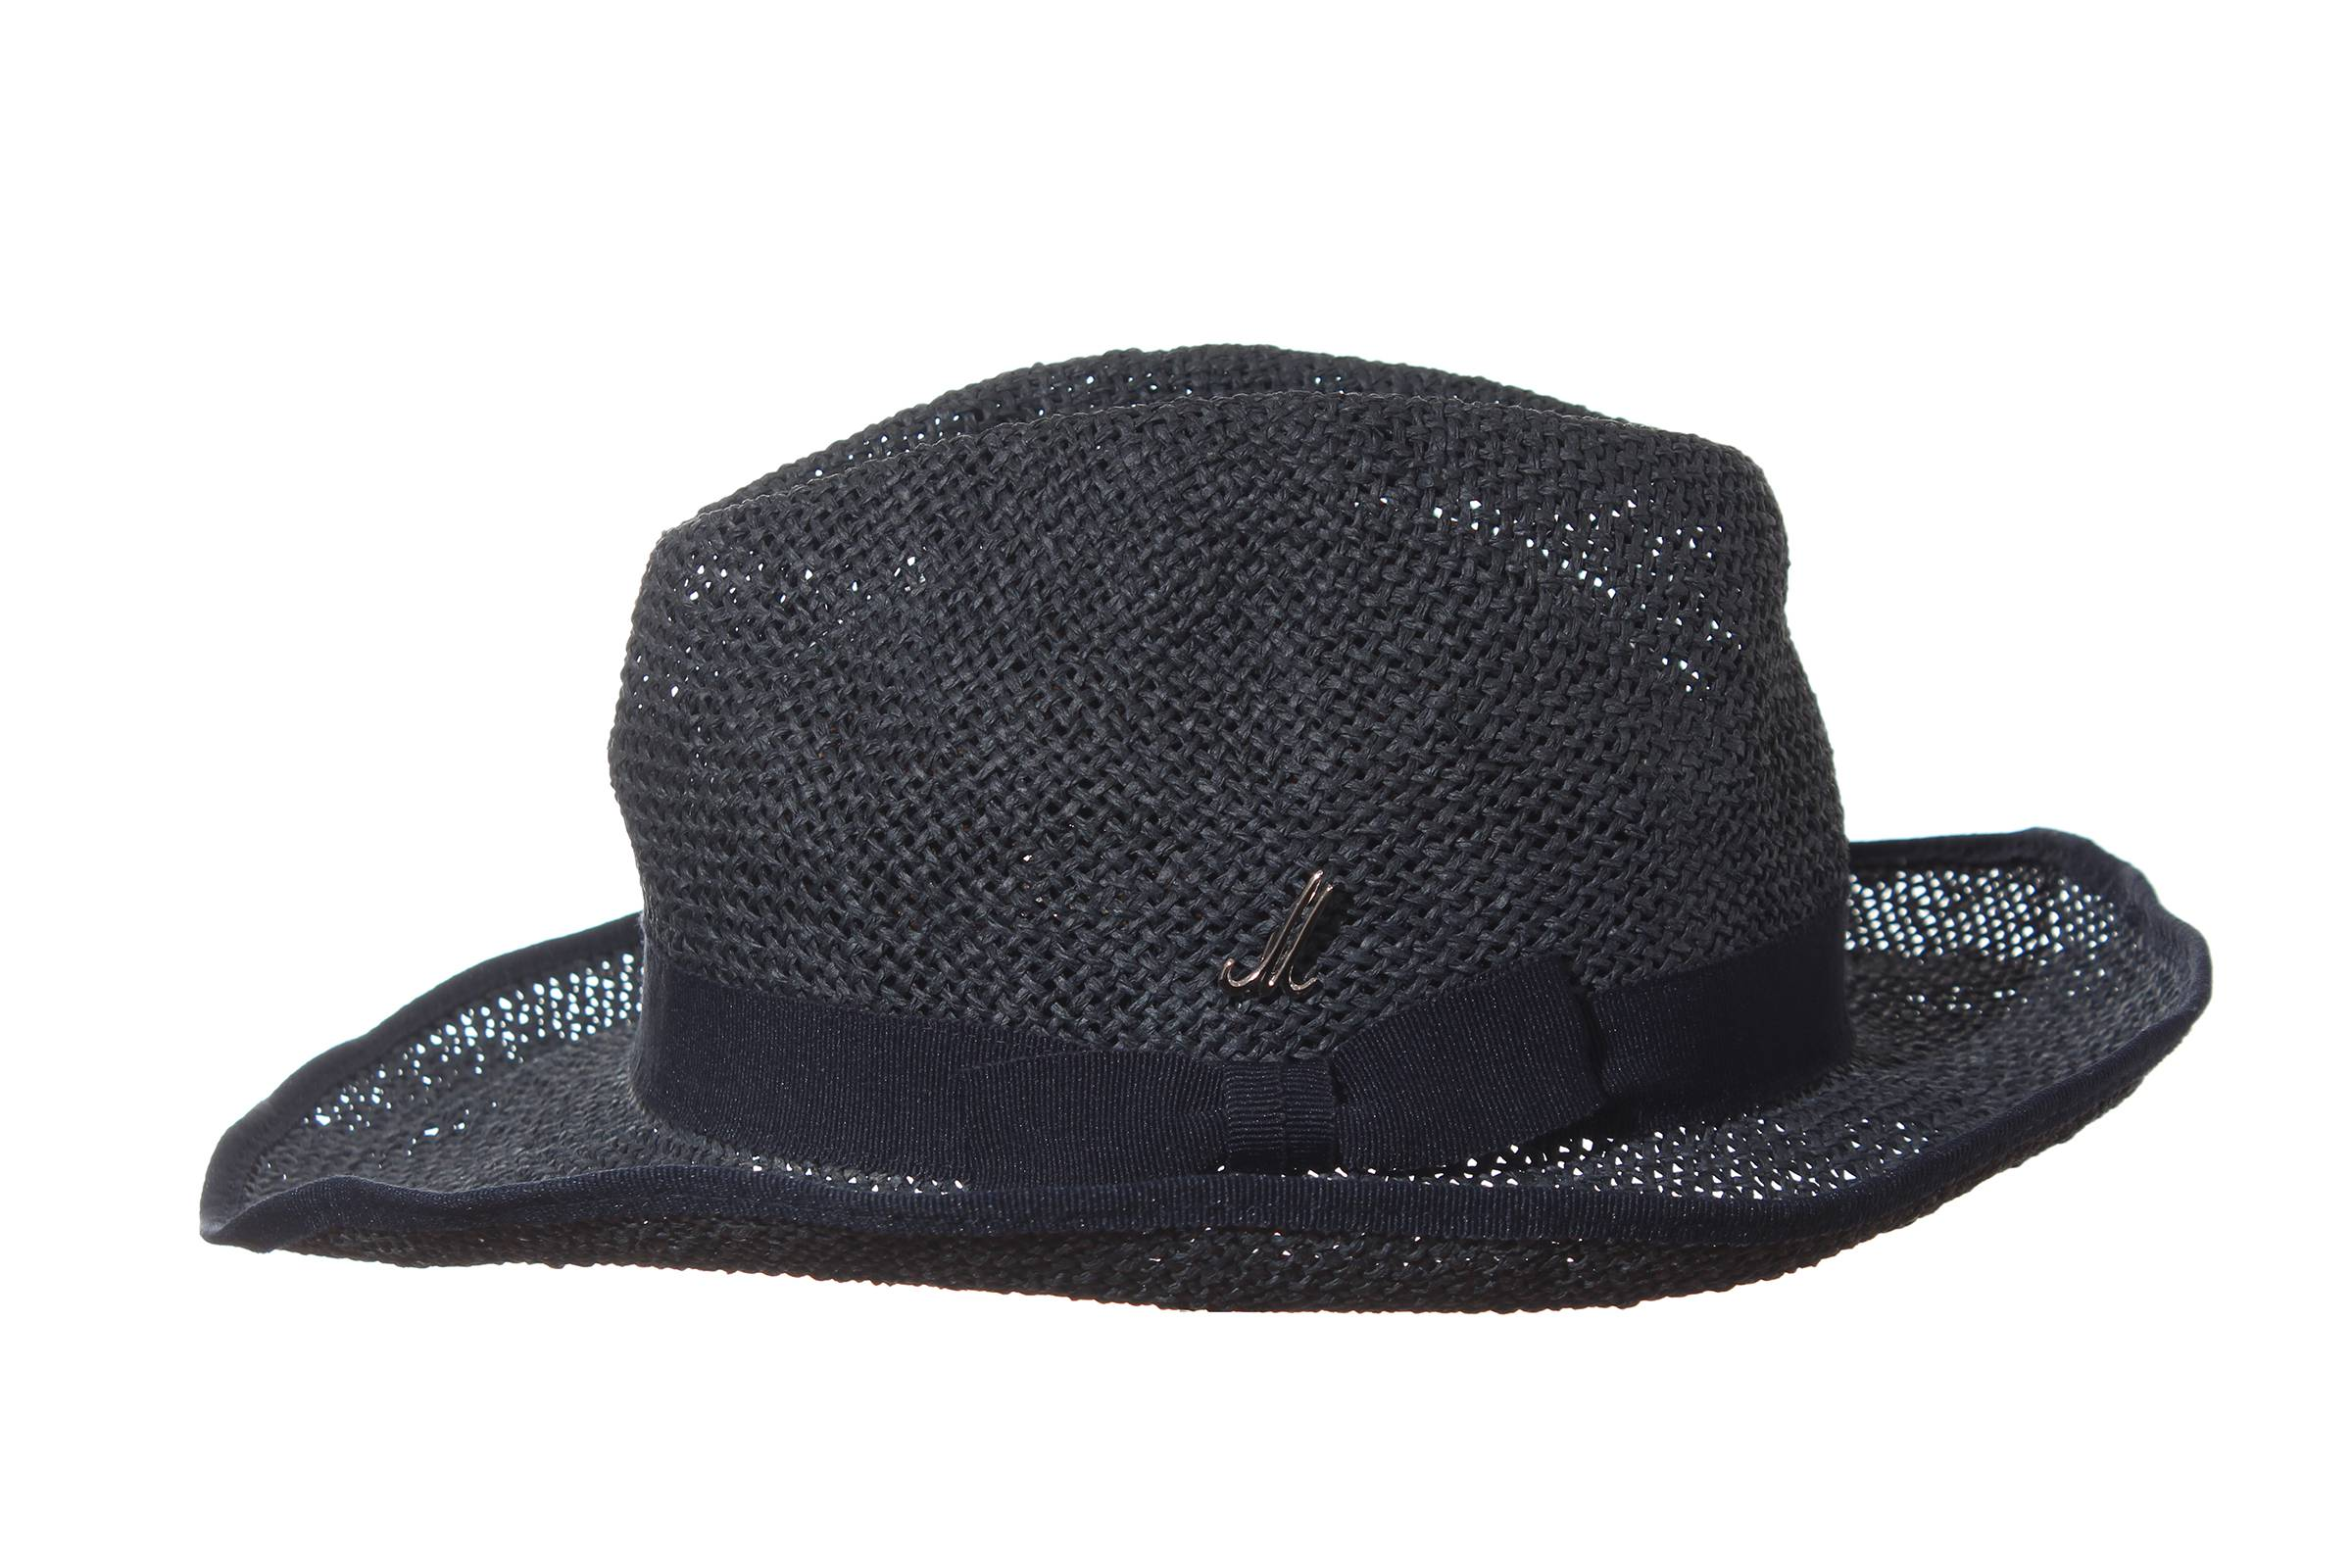 gentleman's hat ART UDO spagat